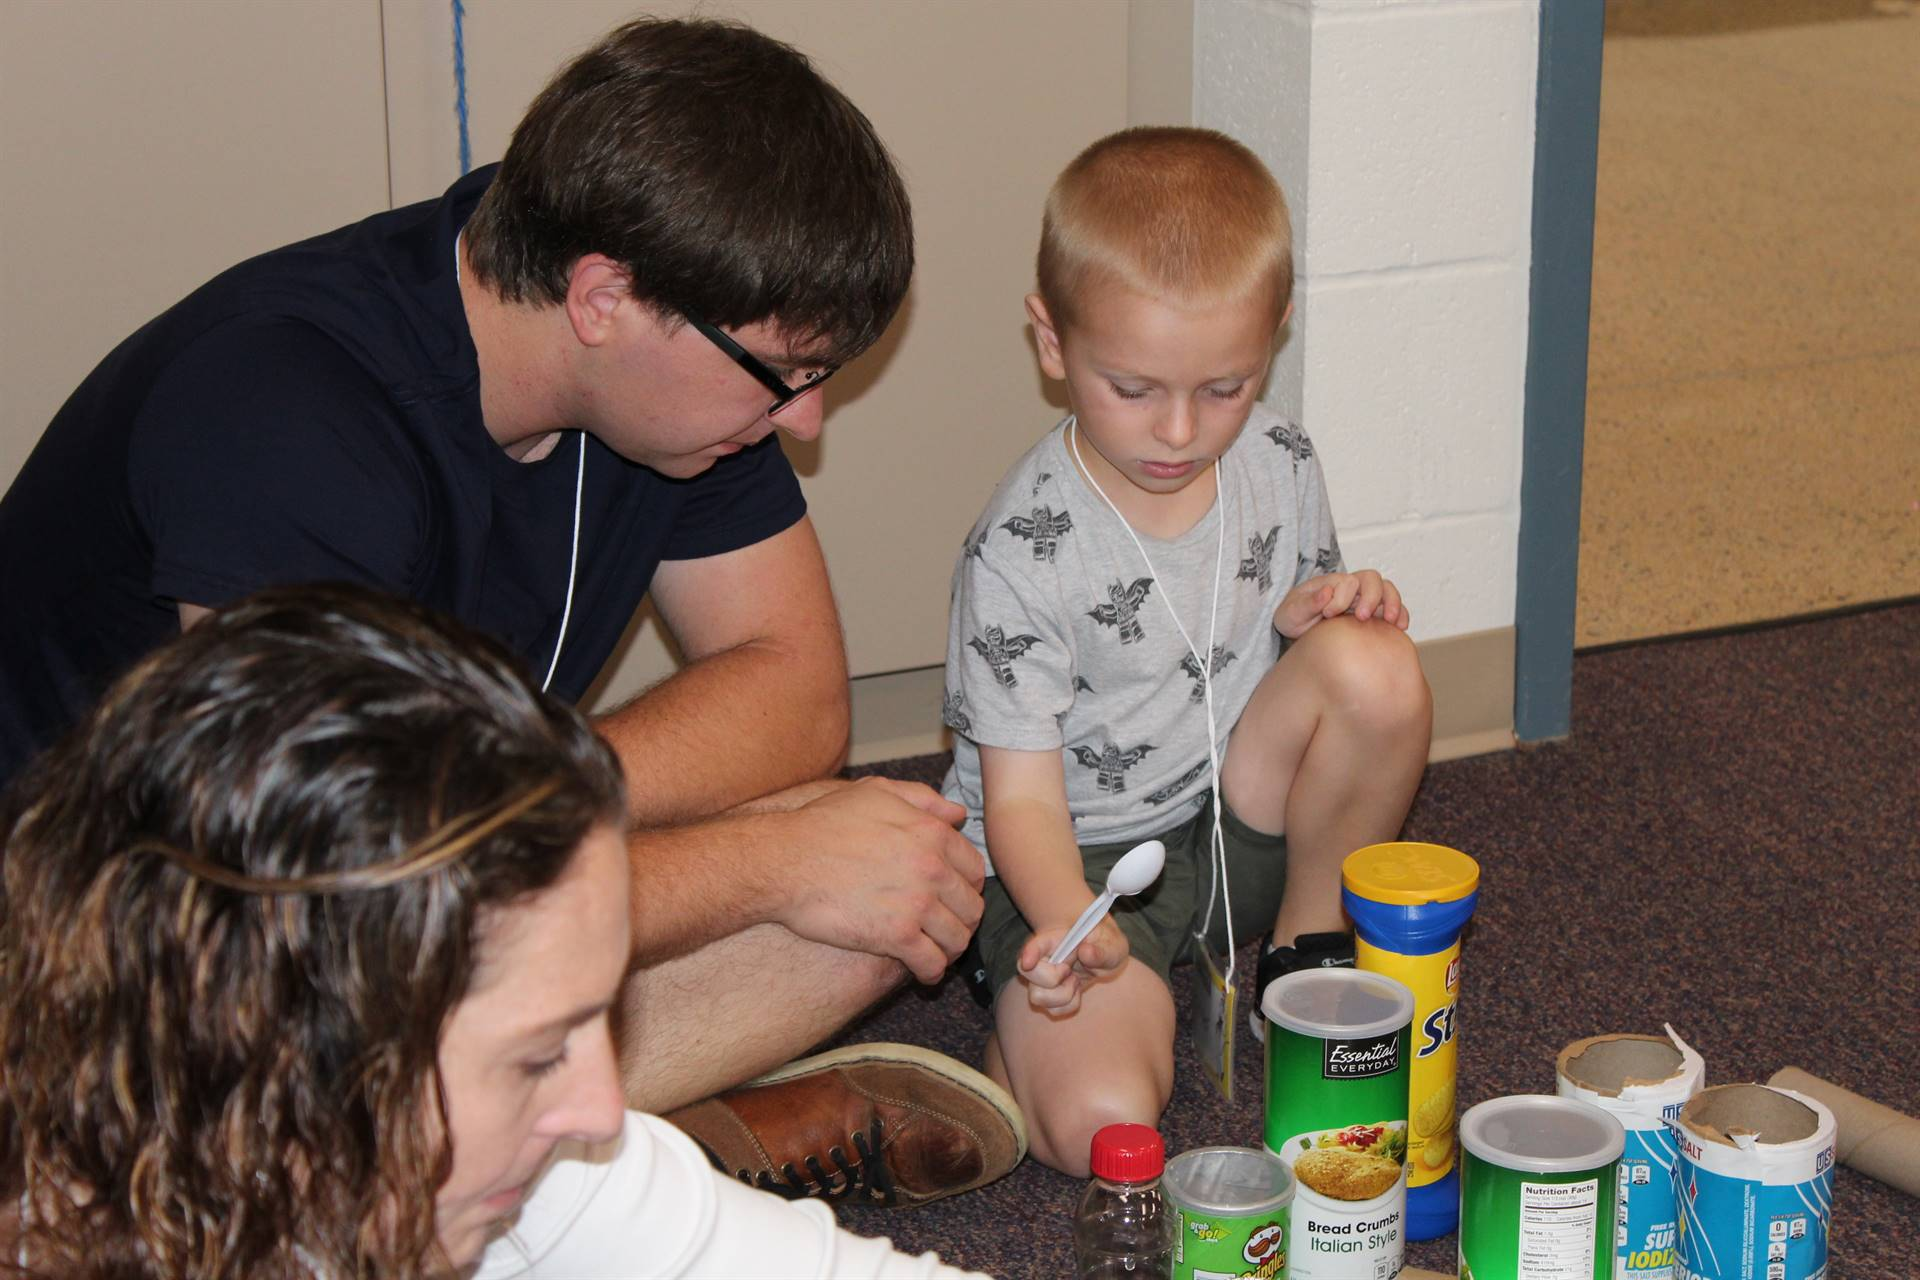 Parent and student using a spoon to beat on potato chip canisters to make sounds